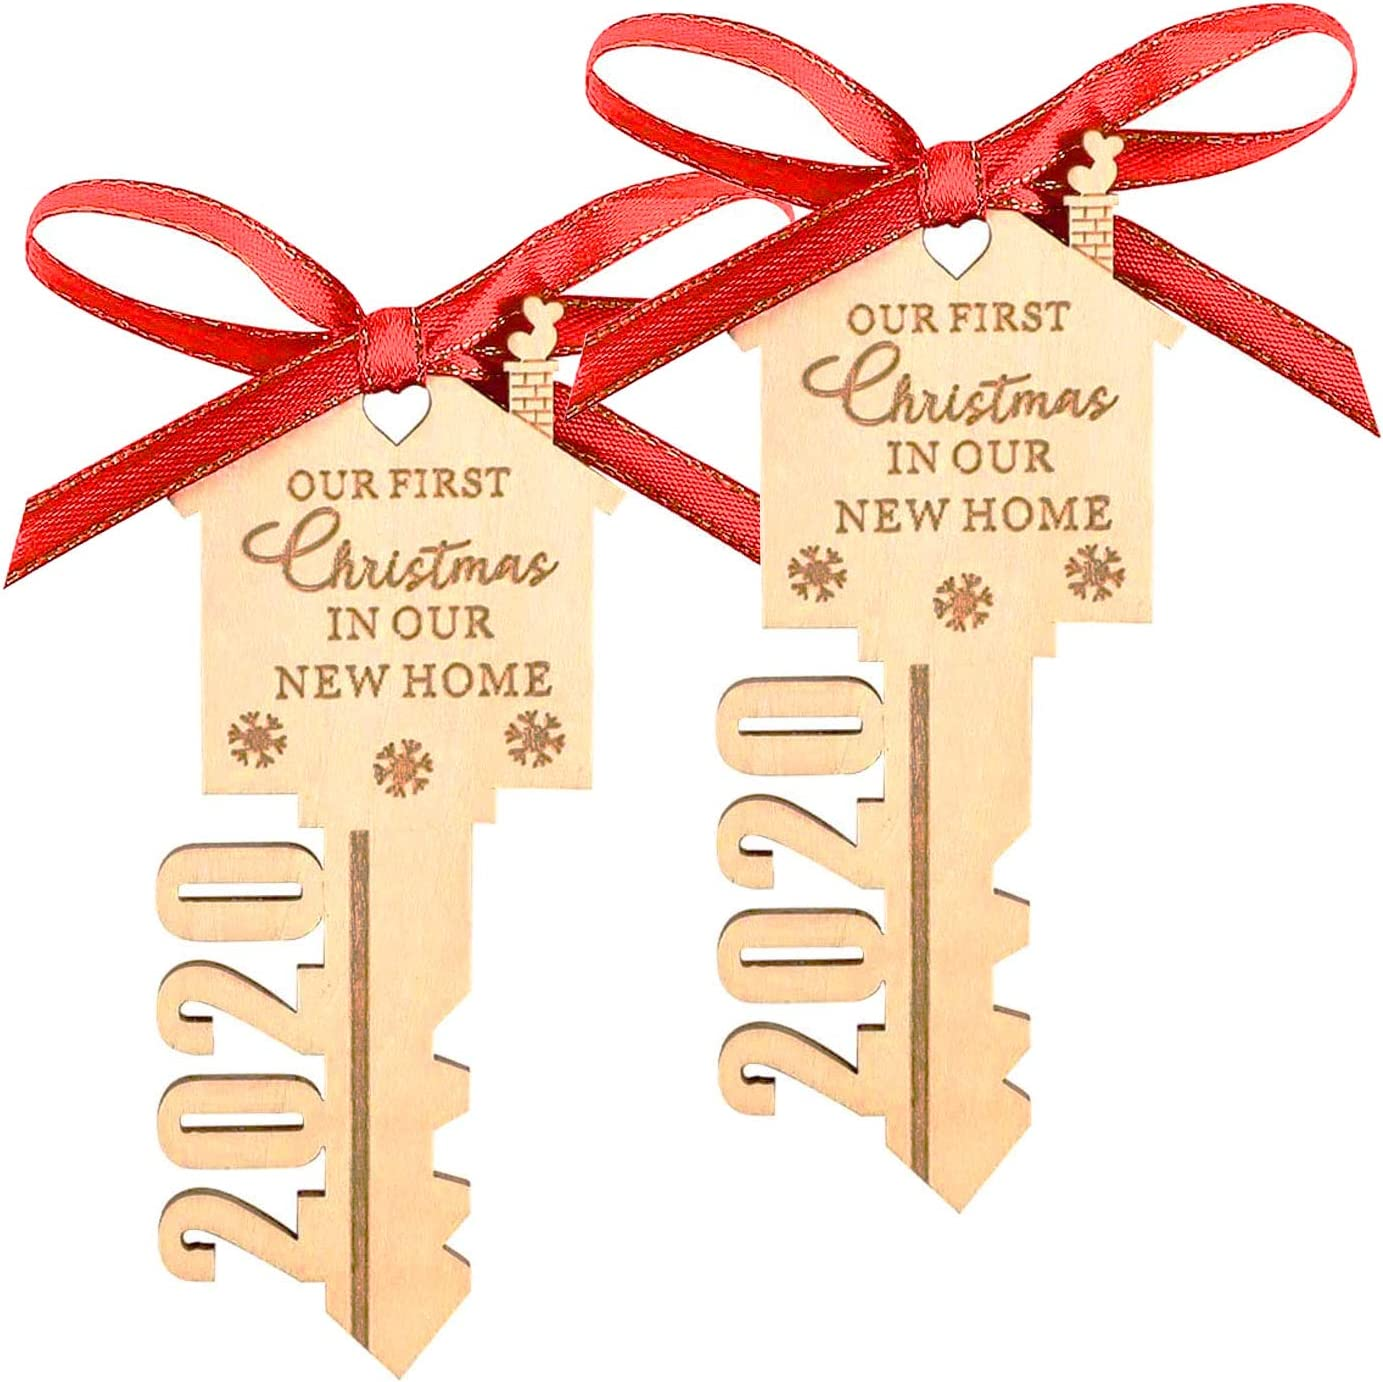 LEJHOME 2020 Our First Christmas in Our New Home Wood Key Christmas Ornament for Housewarming Gift Christmas Tree Holiday Decoration Pack of 2